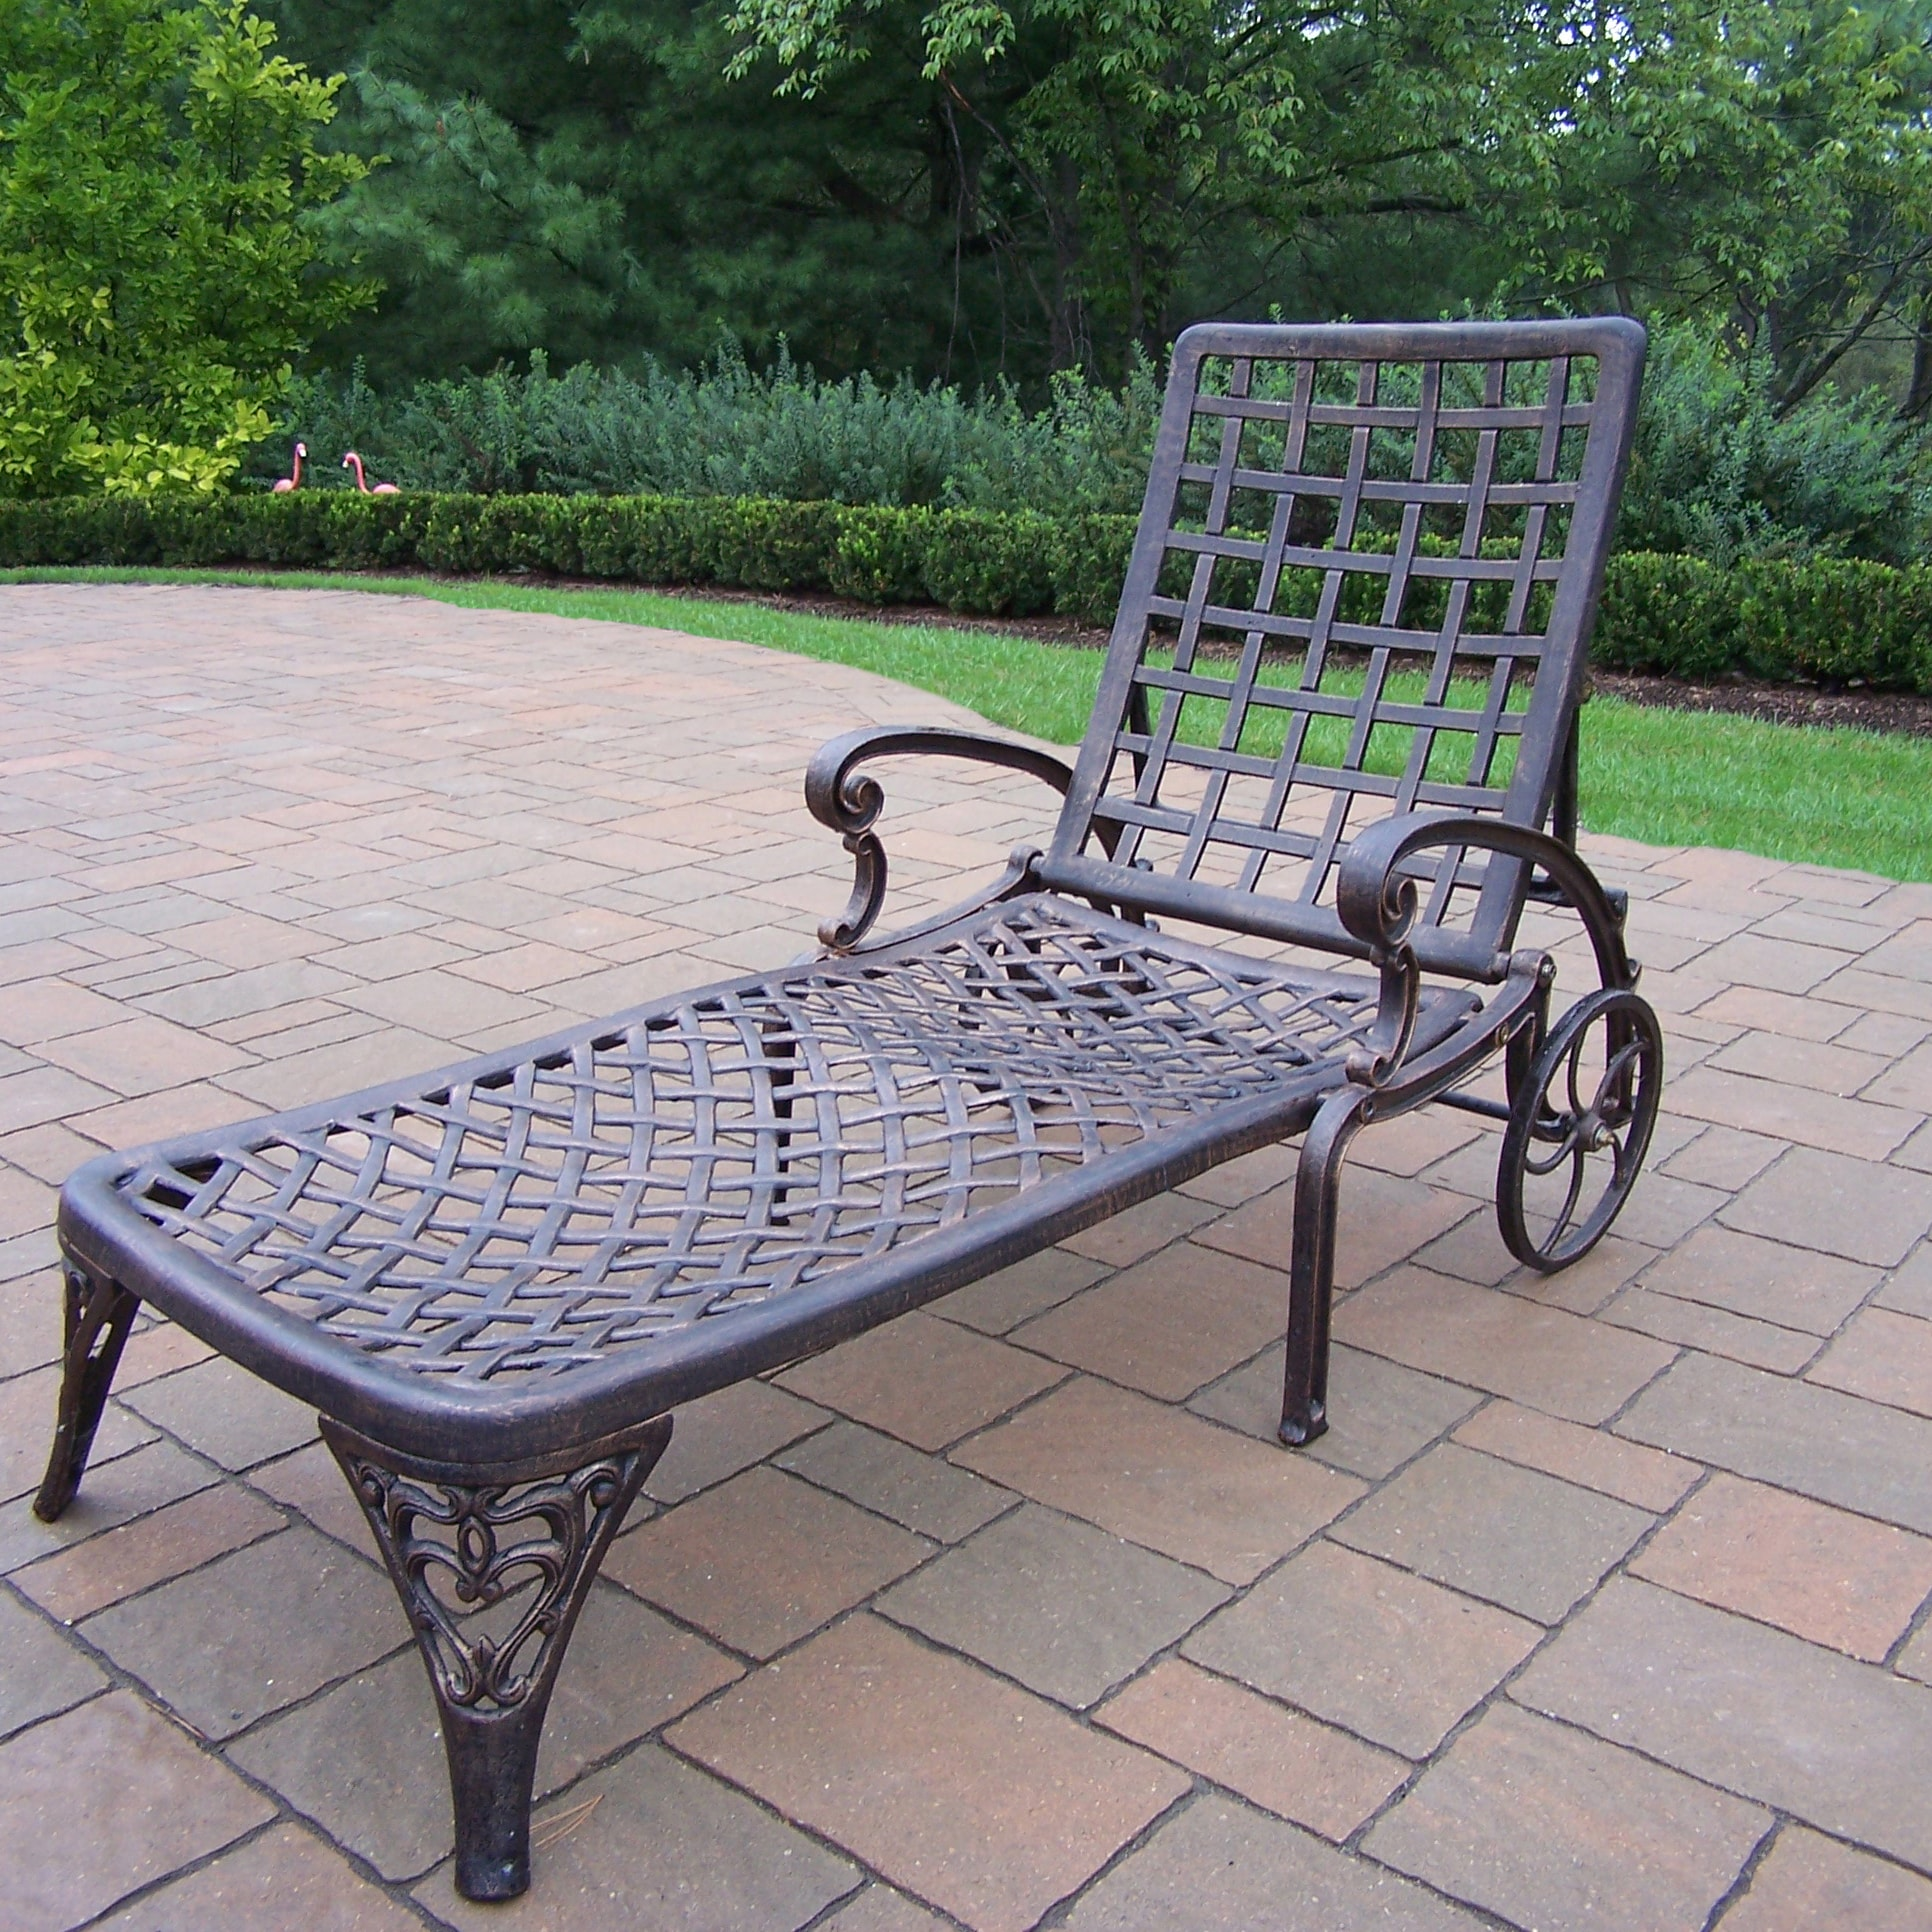 shop table extendable cabanacoast our cast buy patio chaise at store furniture hampton modern from aluminum lounge